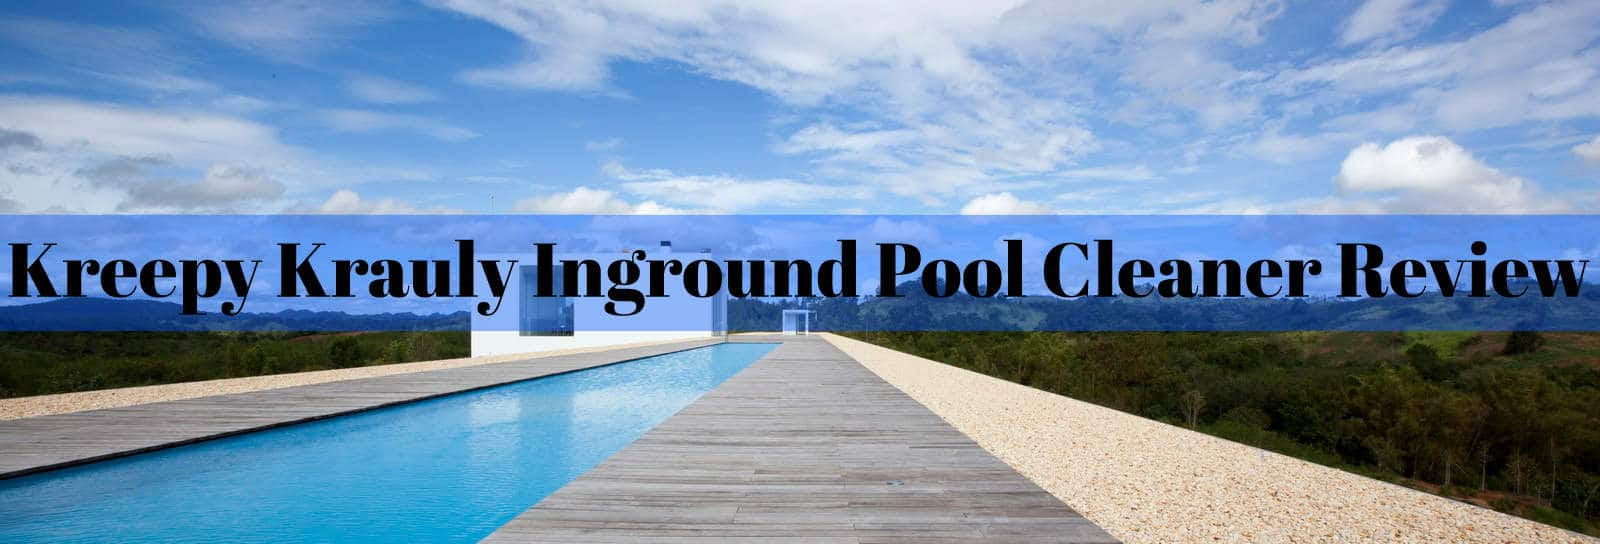 Kreepy Krauly Inground Pool Cleaner Review | The Rex Garden